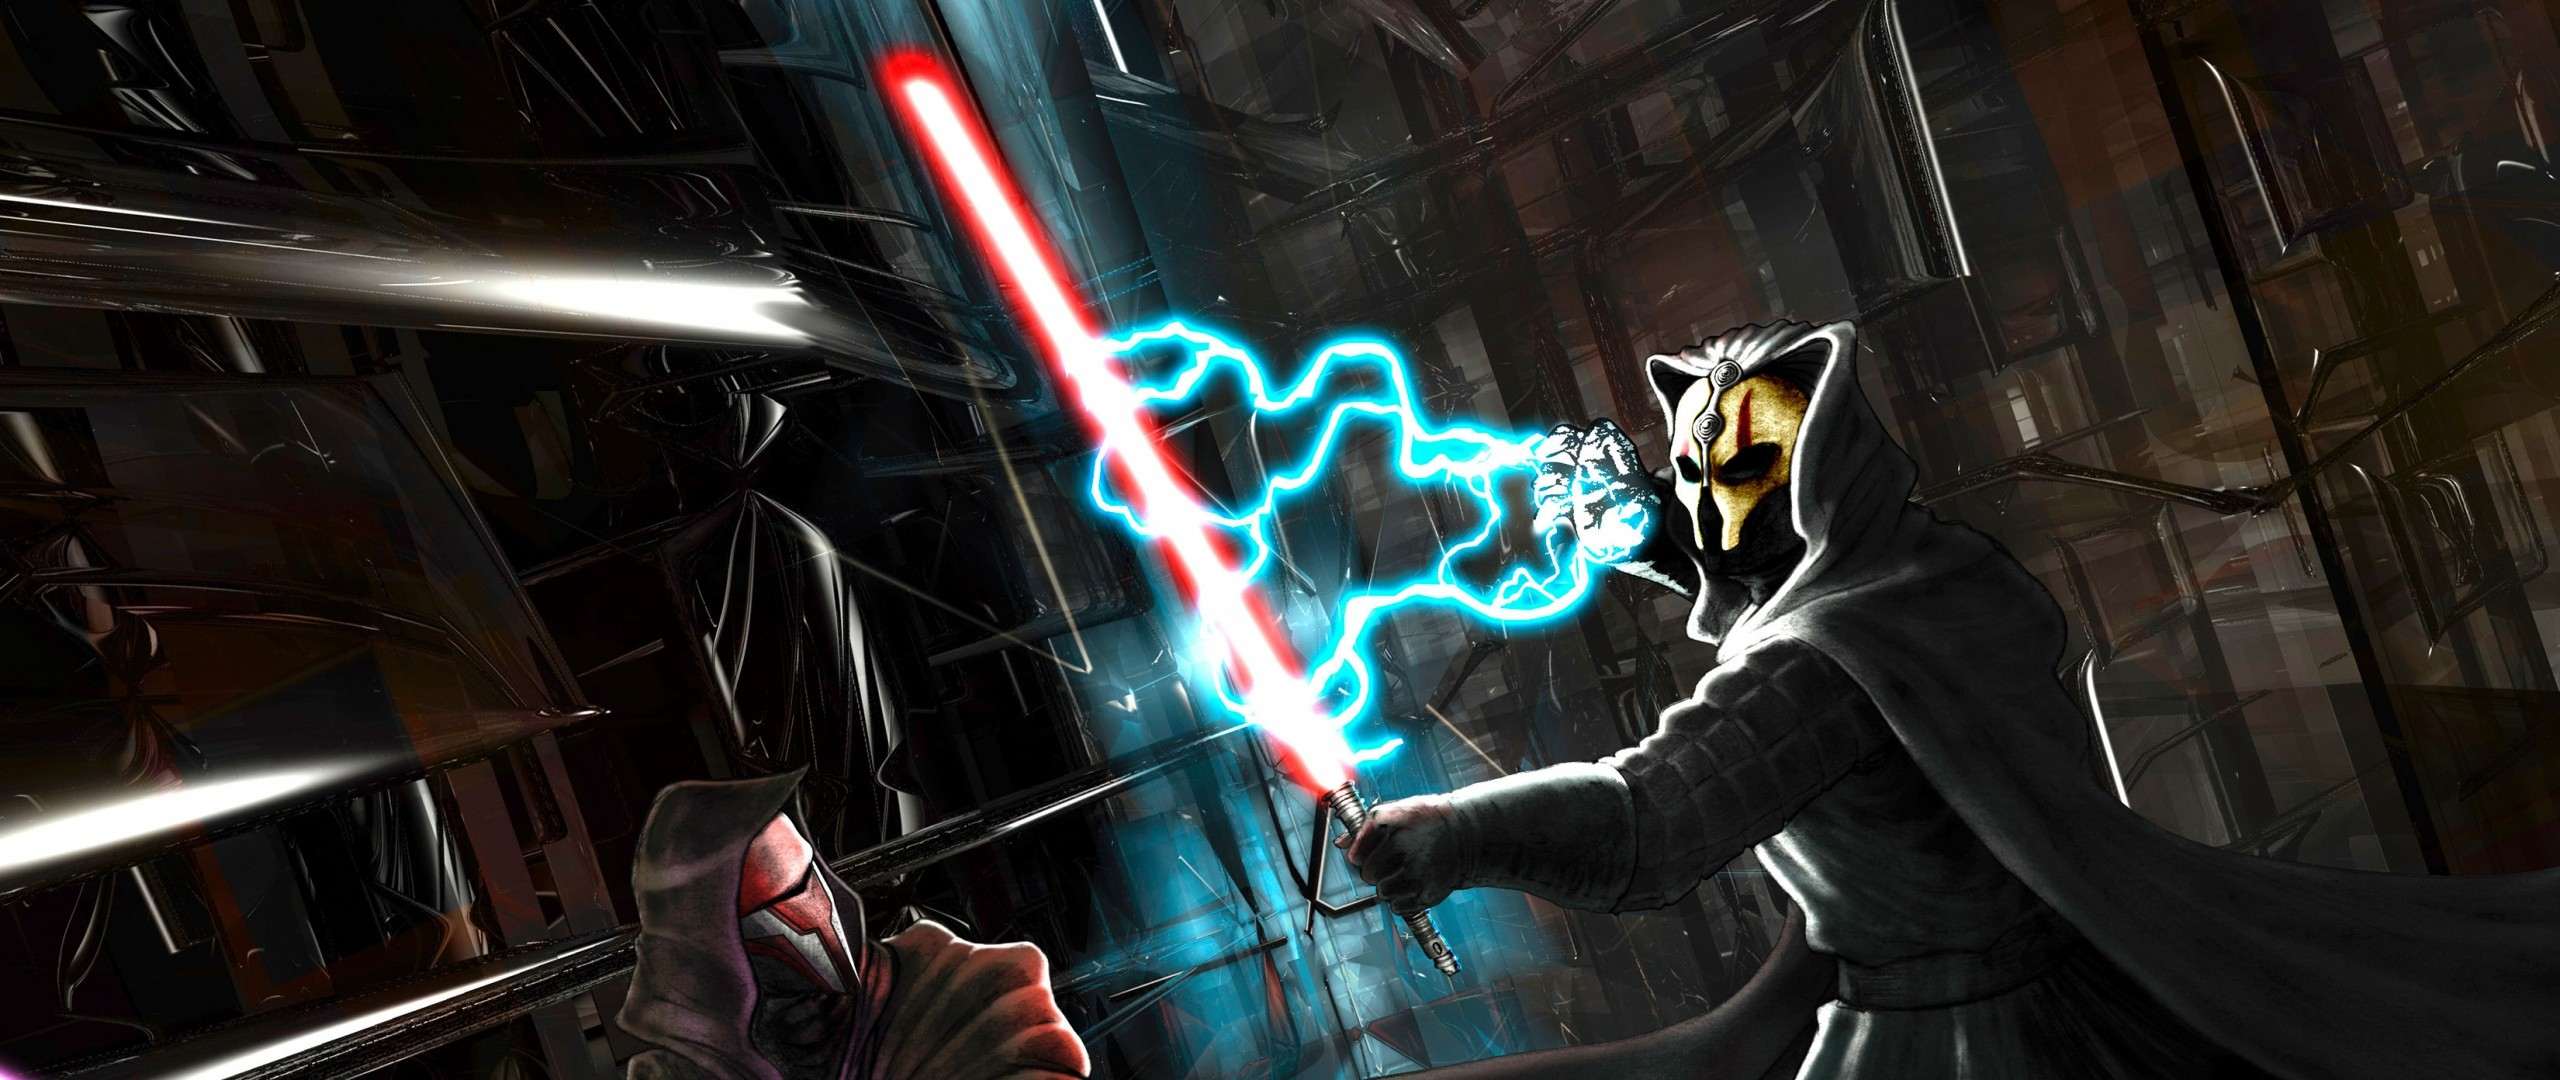 2560x1080 Preview wallpaper star wars, knights of the old republic, darth revan,  darth nihilus